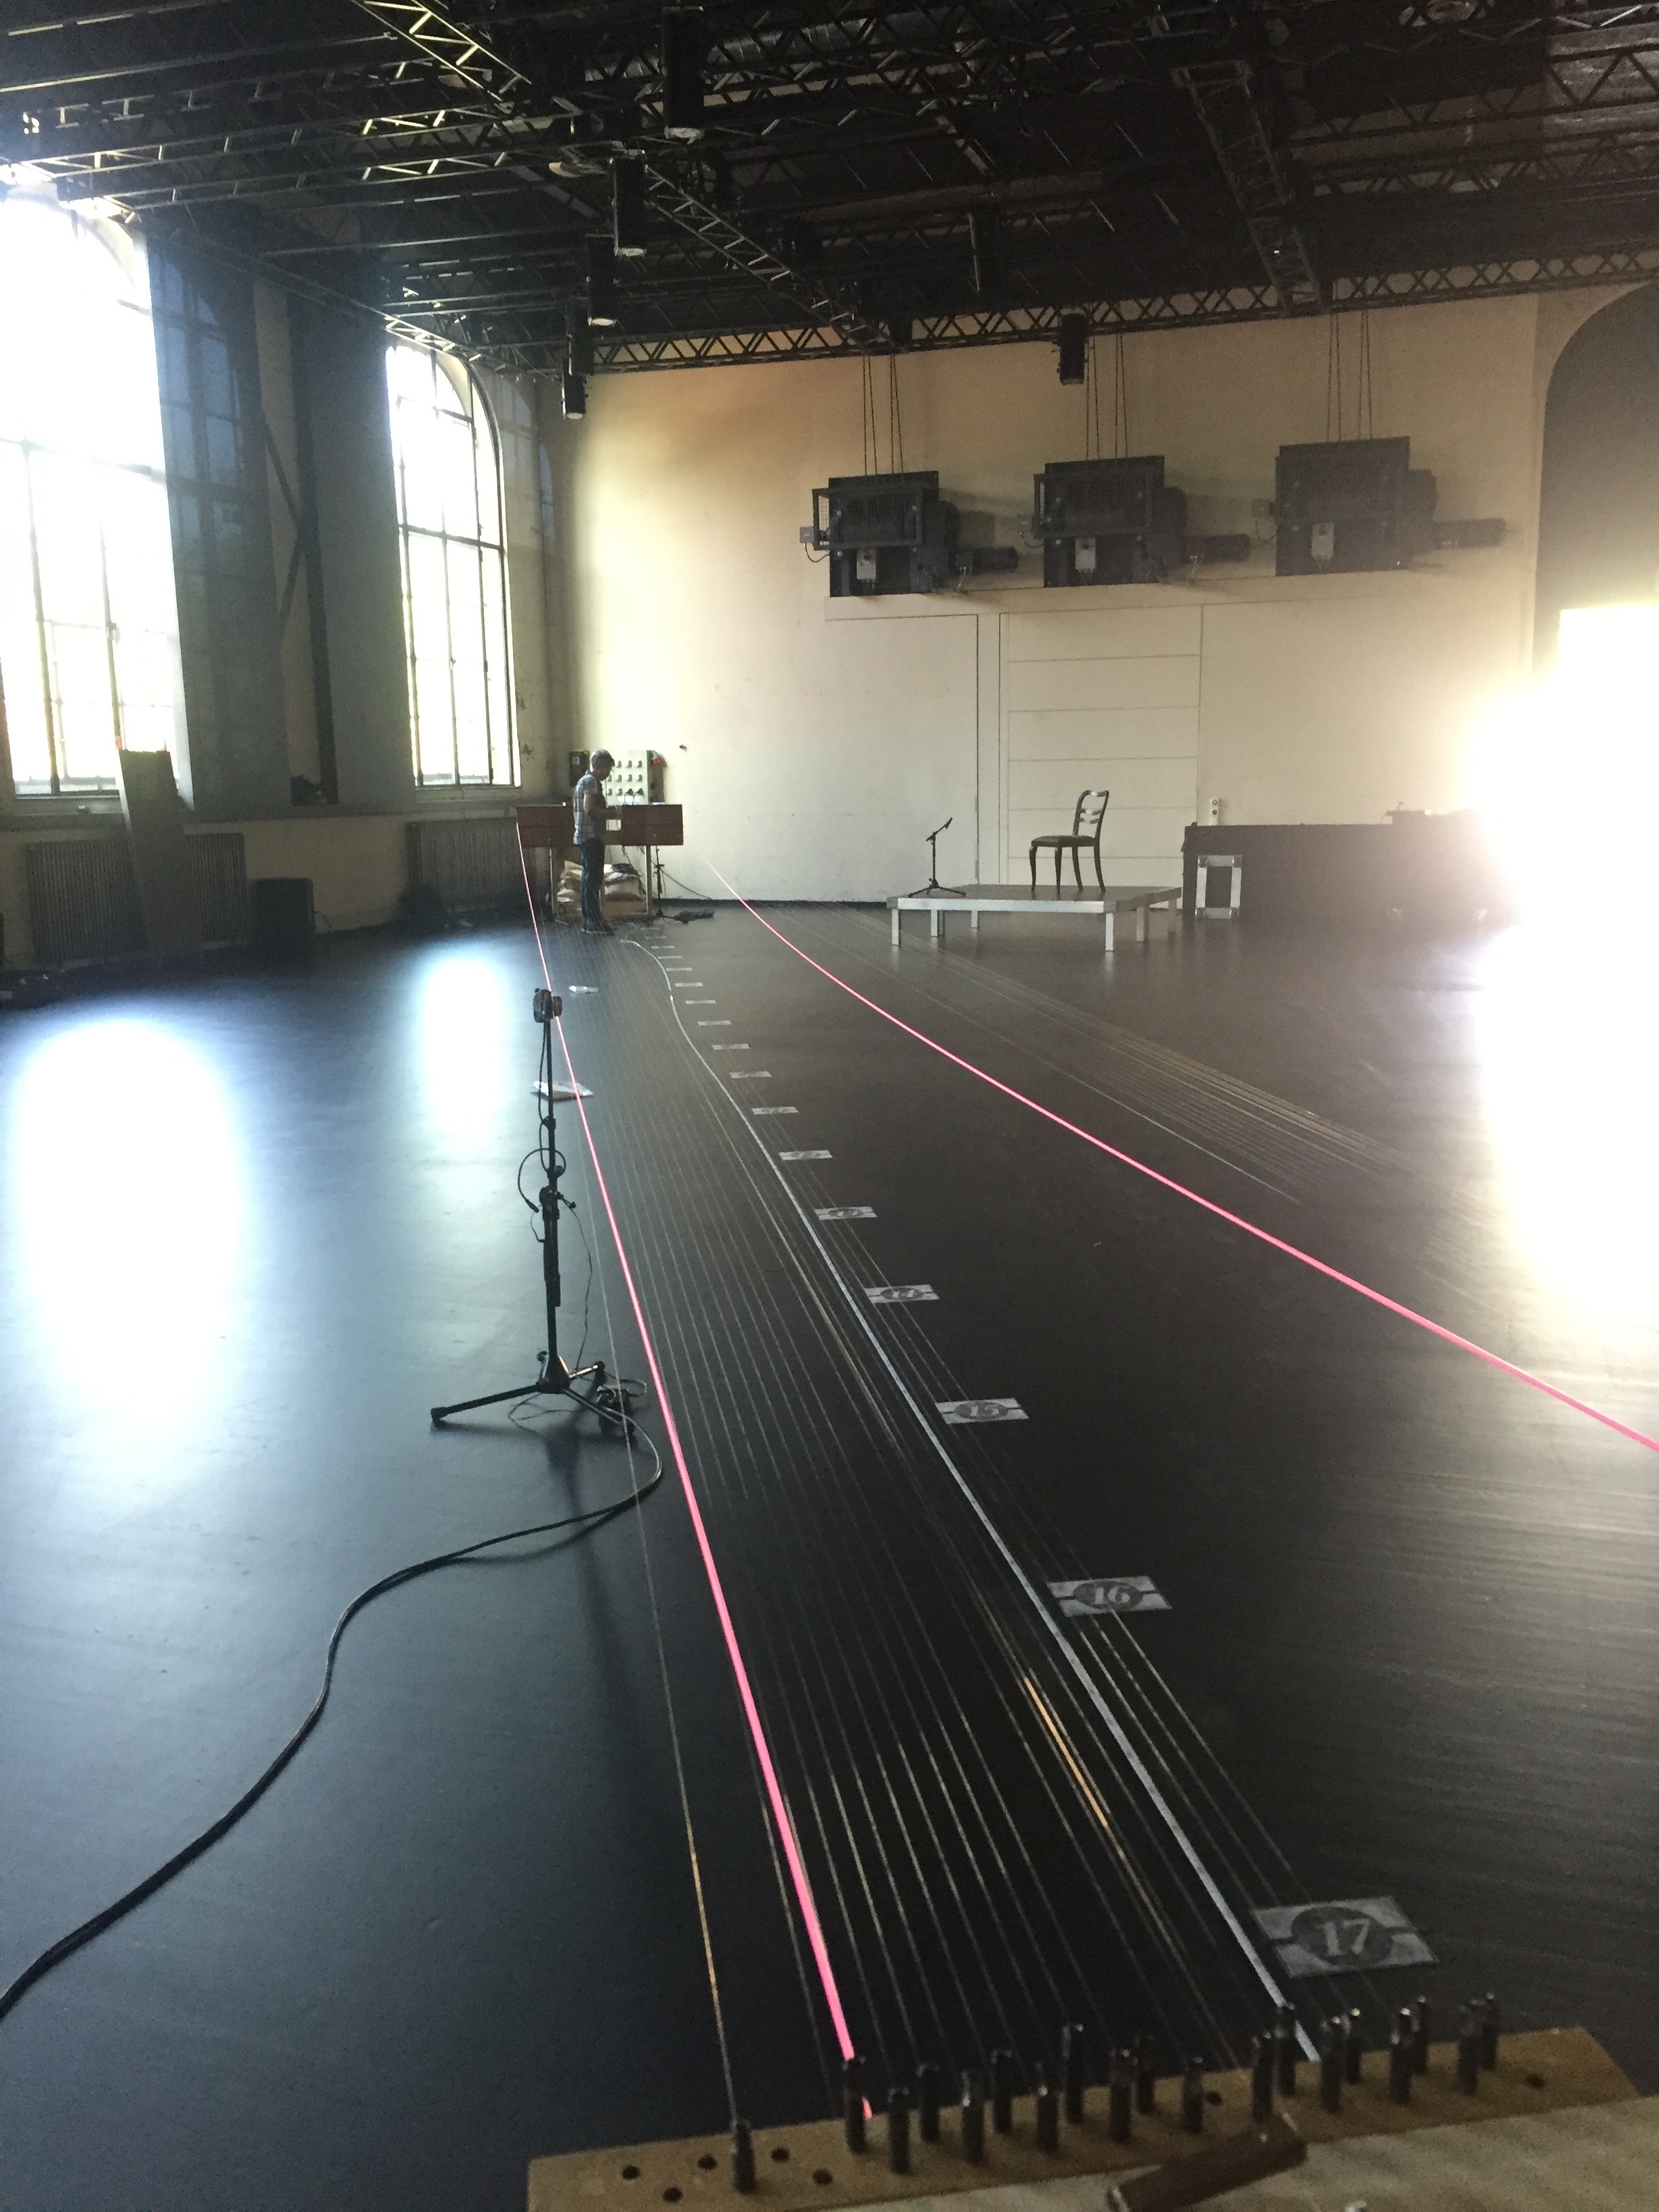 Setting up for a performance of  Harbors in Dampfzentrale, a former power station.